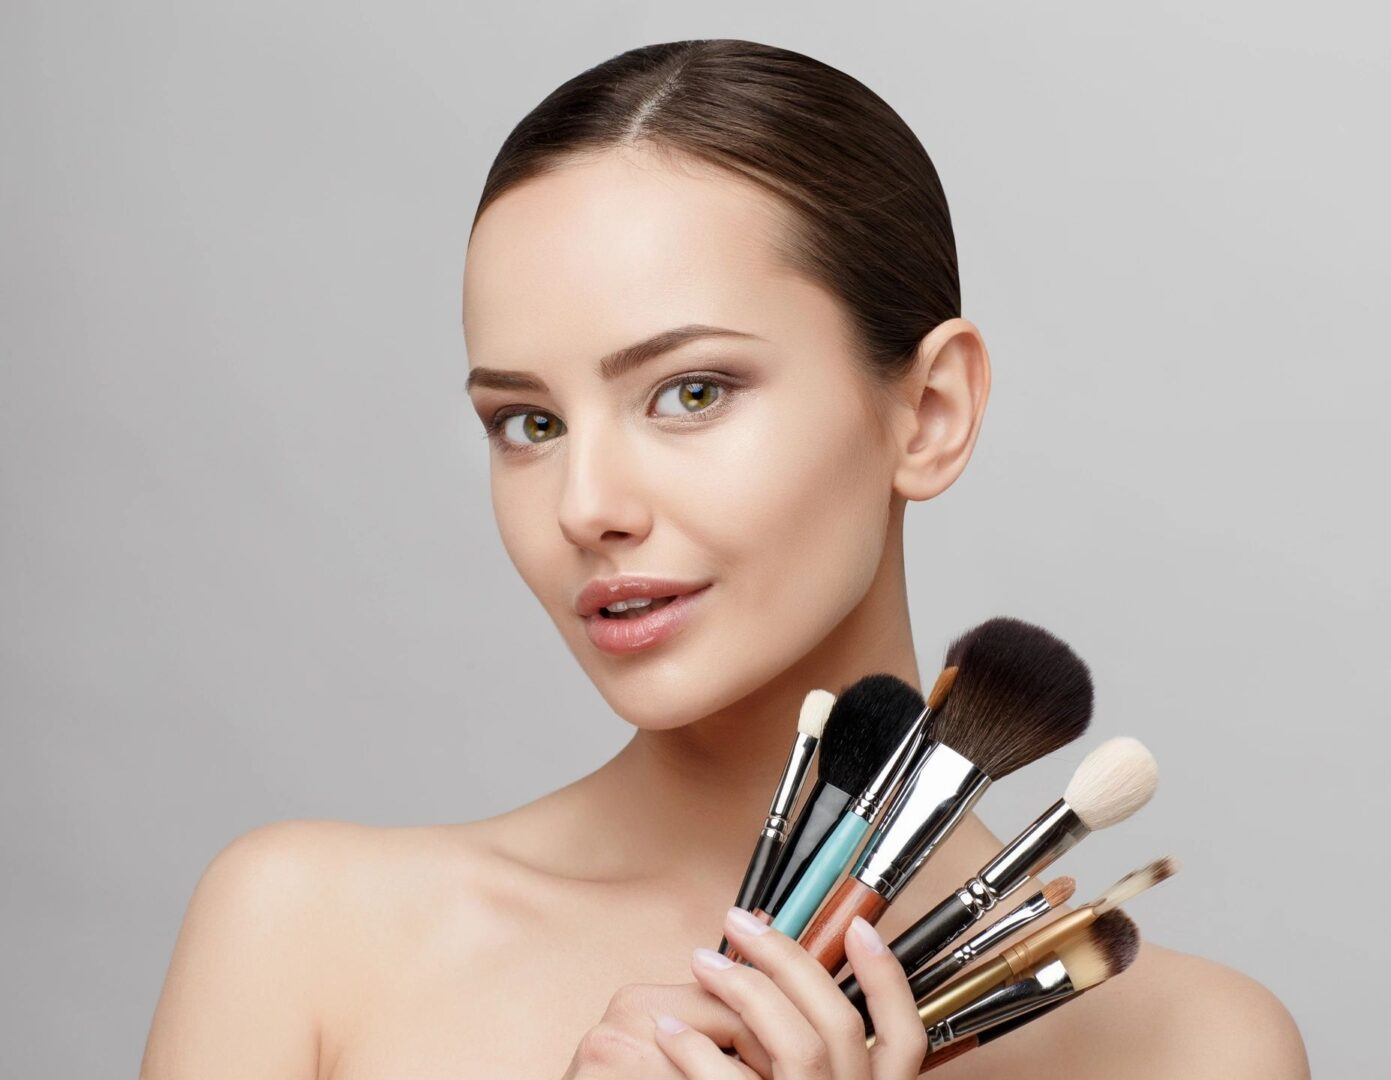 A woman holding a variety of make up brushes